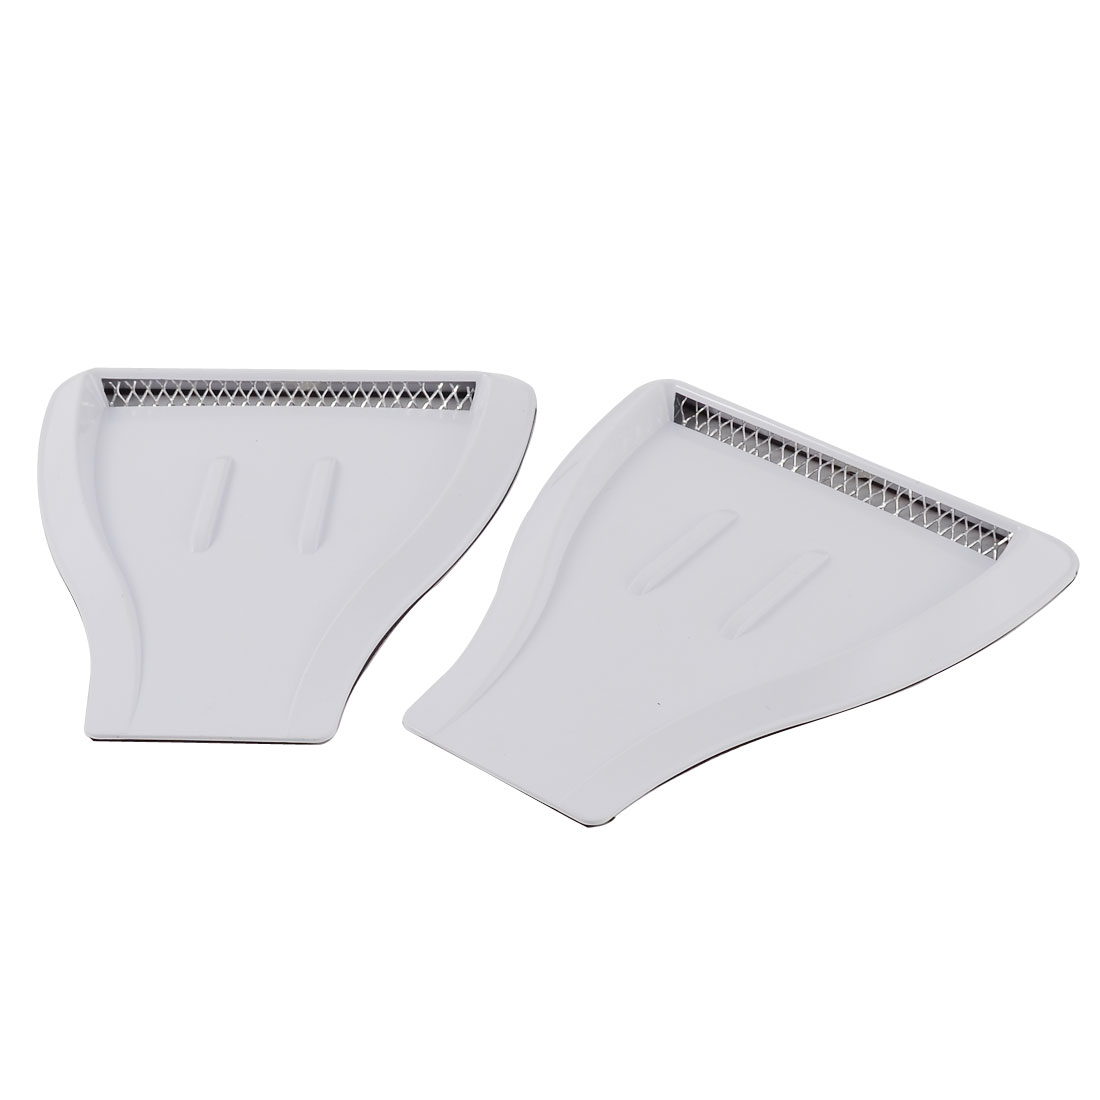 2 Pcs White Shovel Shaped Auto Air Flow Decorative Sticker